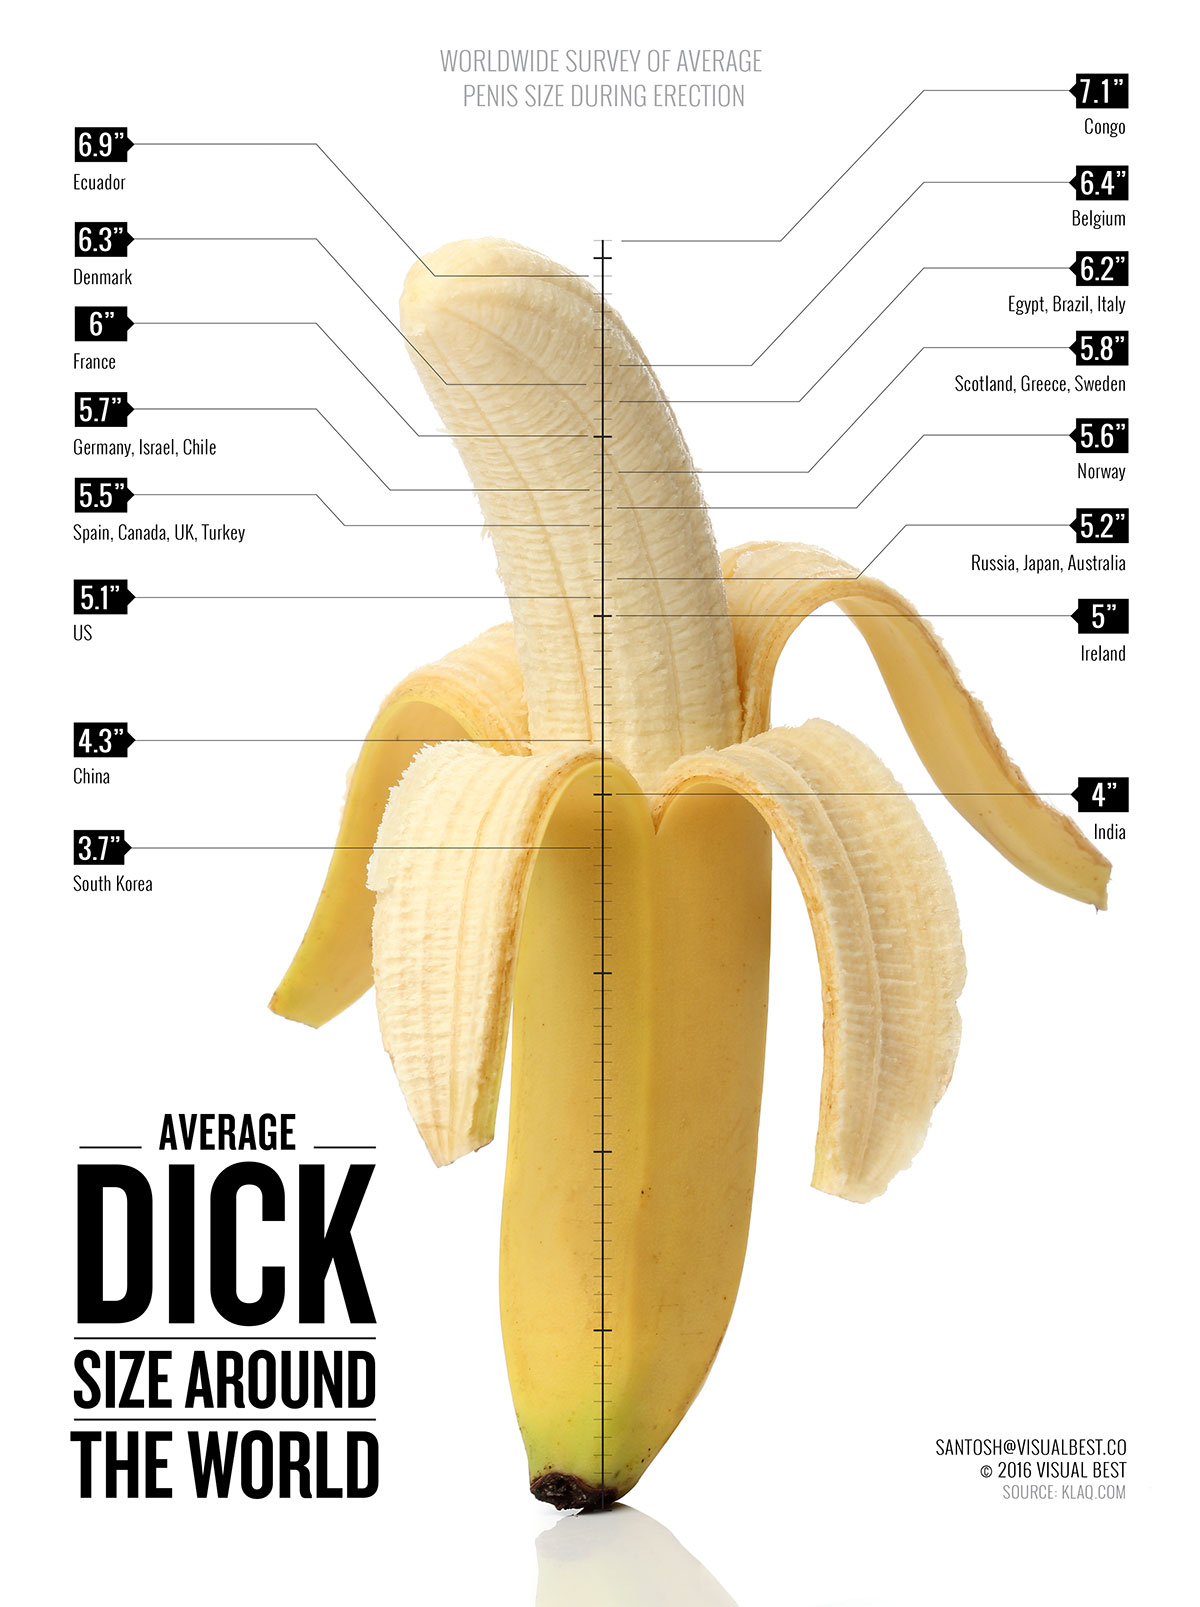 average-penis-sizes-around-the-world-visualbest-santosh